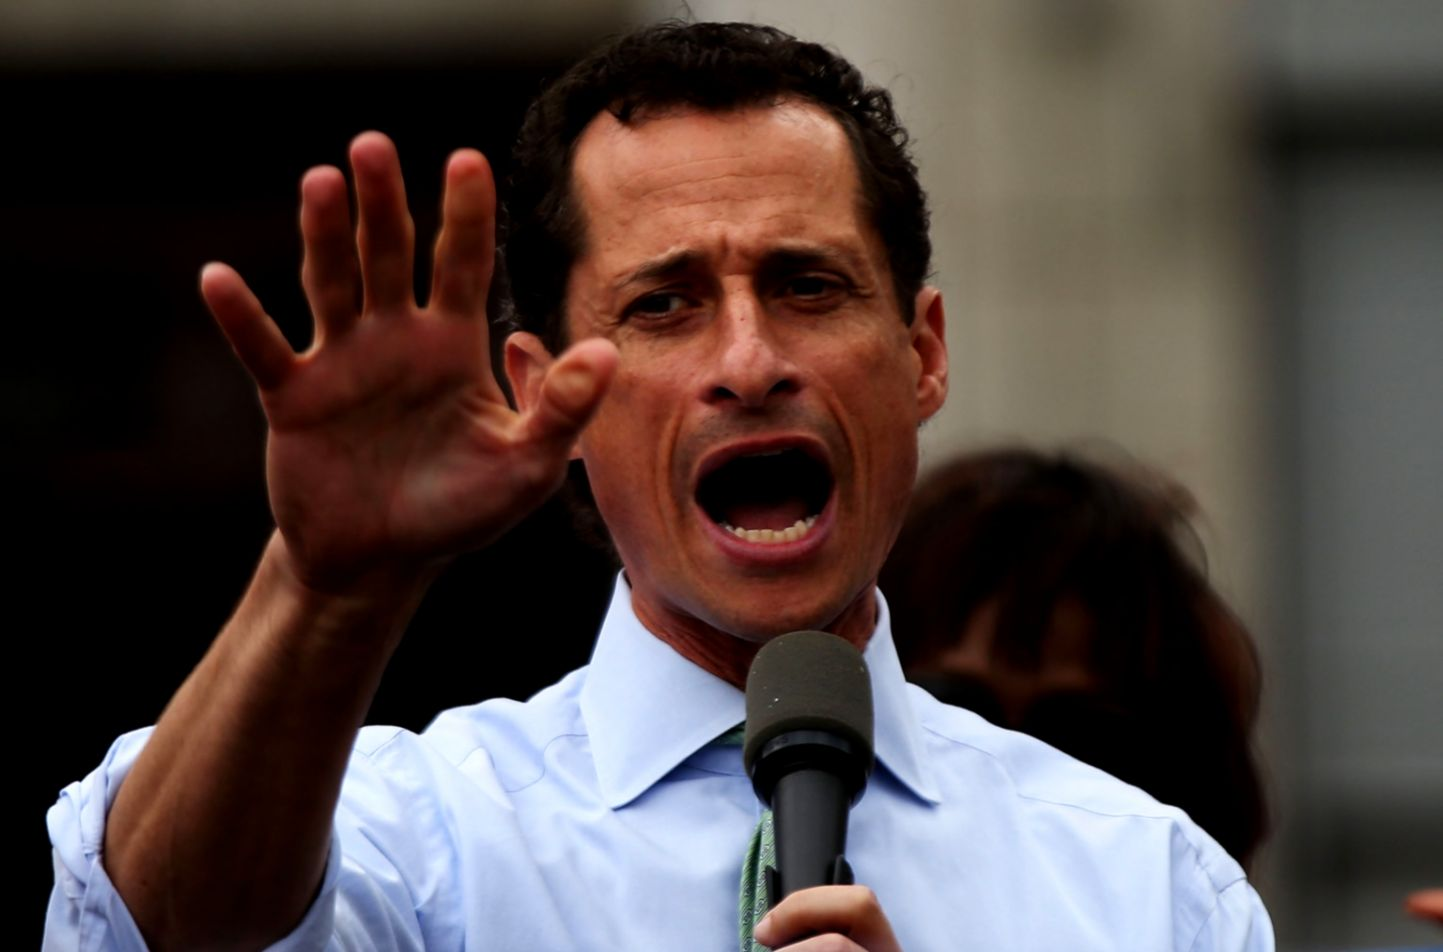 Anthony Weiner Wallpapers Wallpapers Names 1443x952